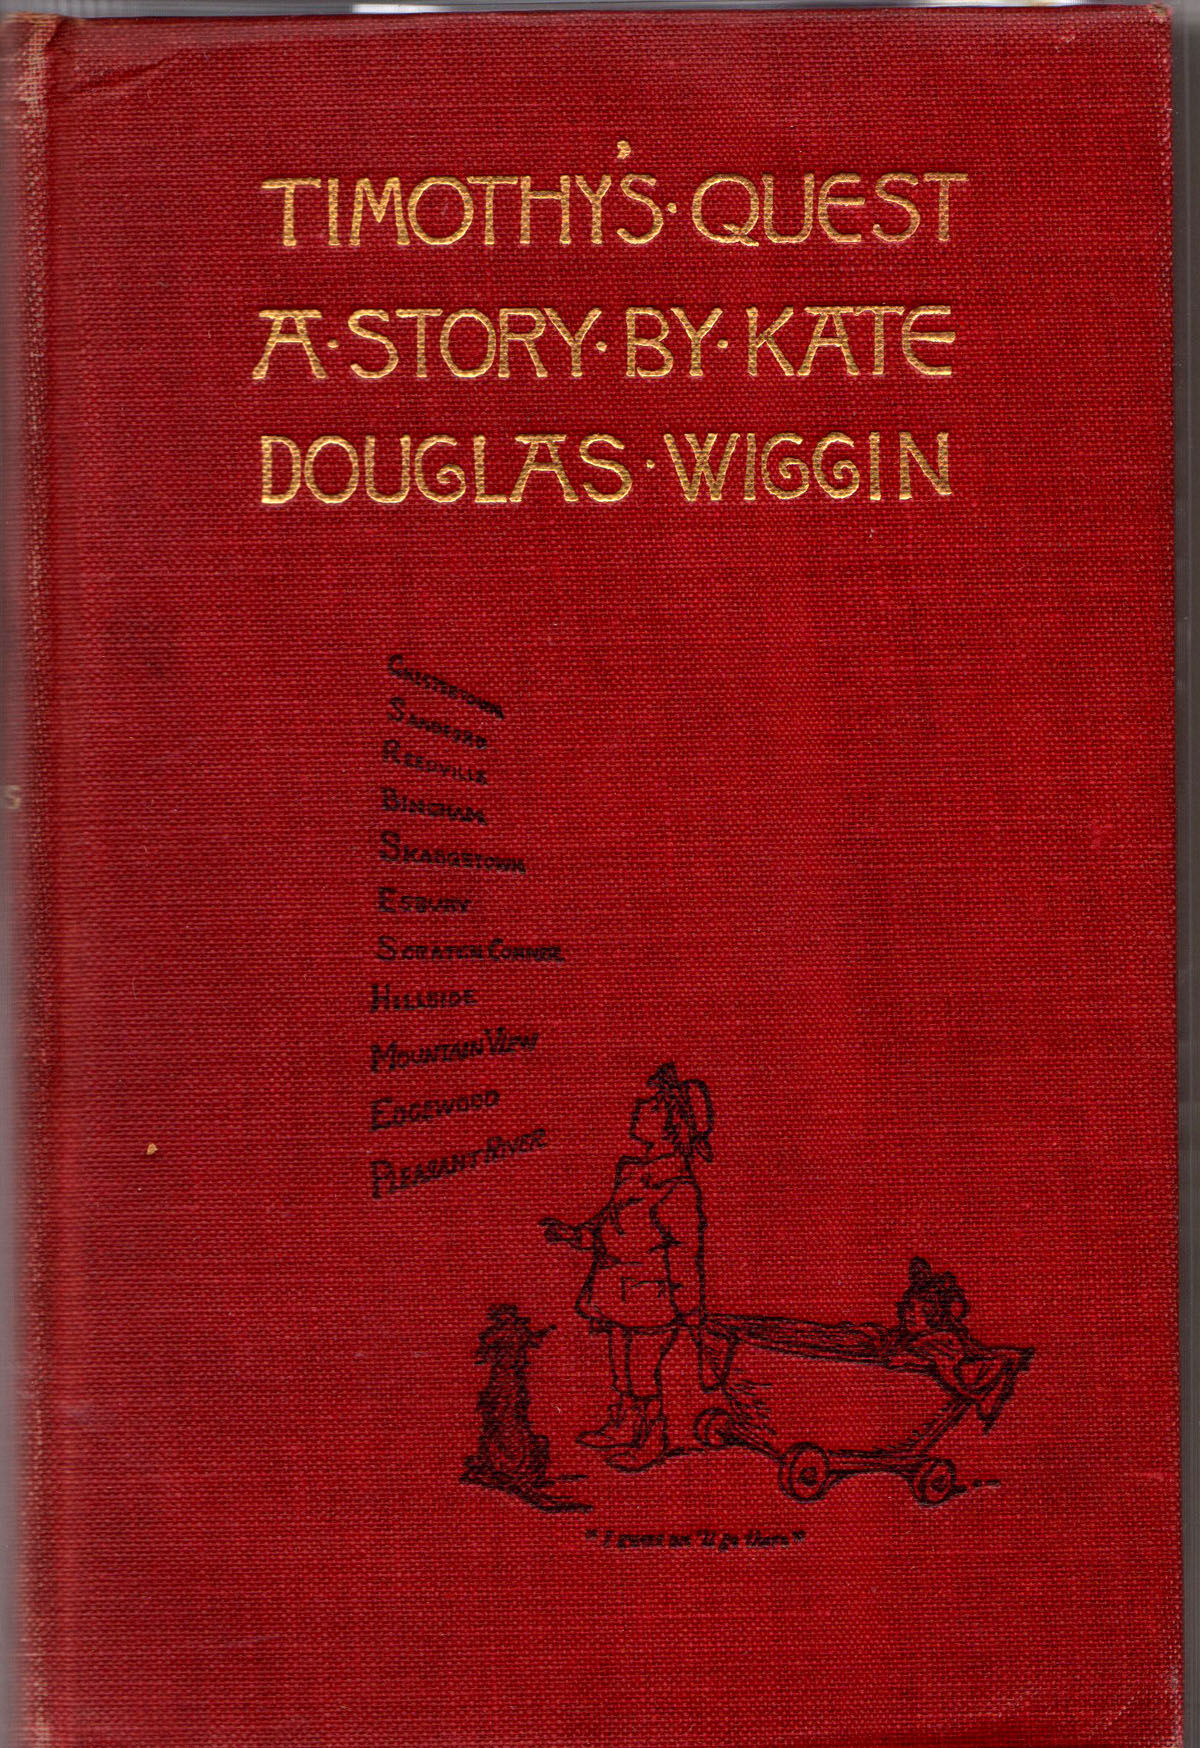 Kate douglas wiggin timothy 39 s quest inscribed 1890 by for Uncle tom s cabin first edition value